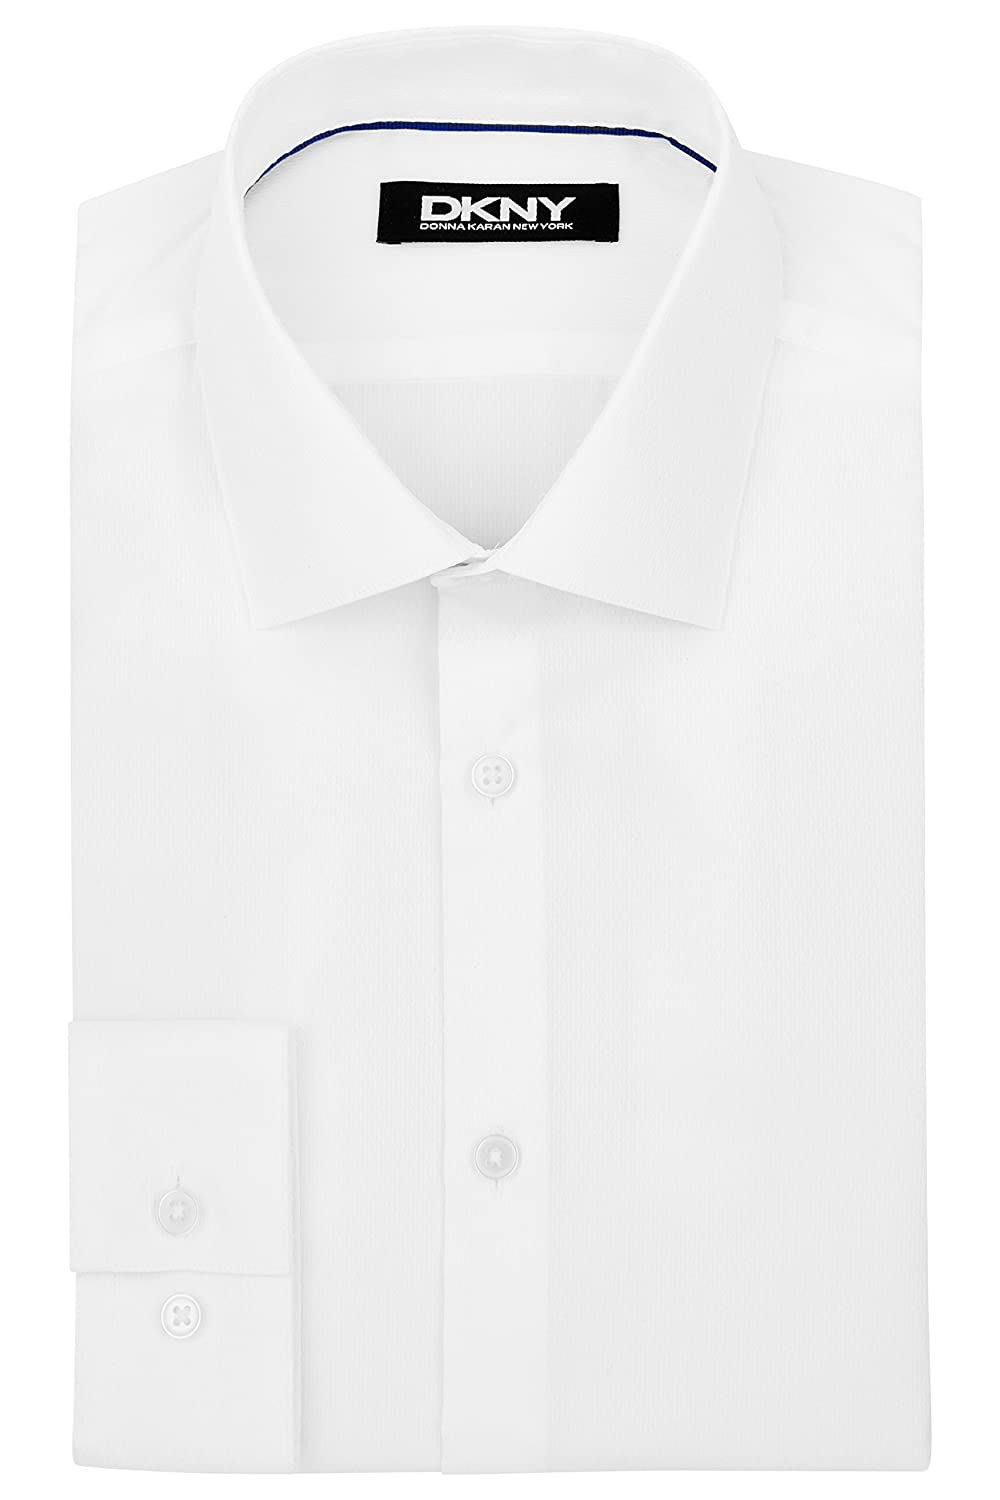 dkny men s slim fit white single cuff dobby texture shirt 16 5 in Women Perfume by Donna Karan dkny men s slim fit white single cuff dobby texture shirt 16 5 in amazon co uk clothing